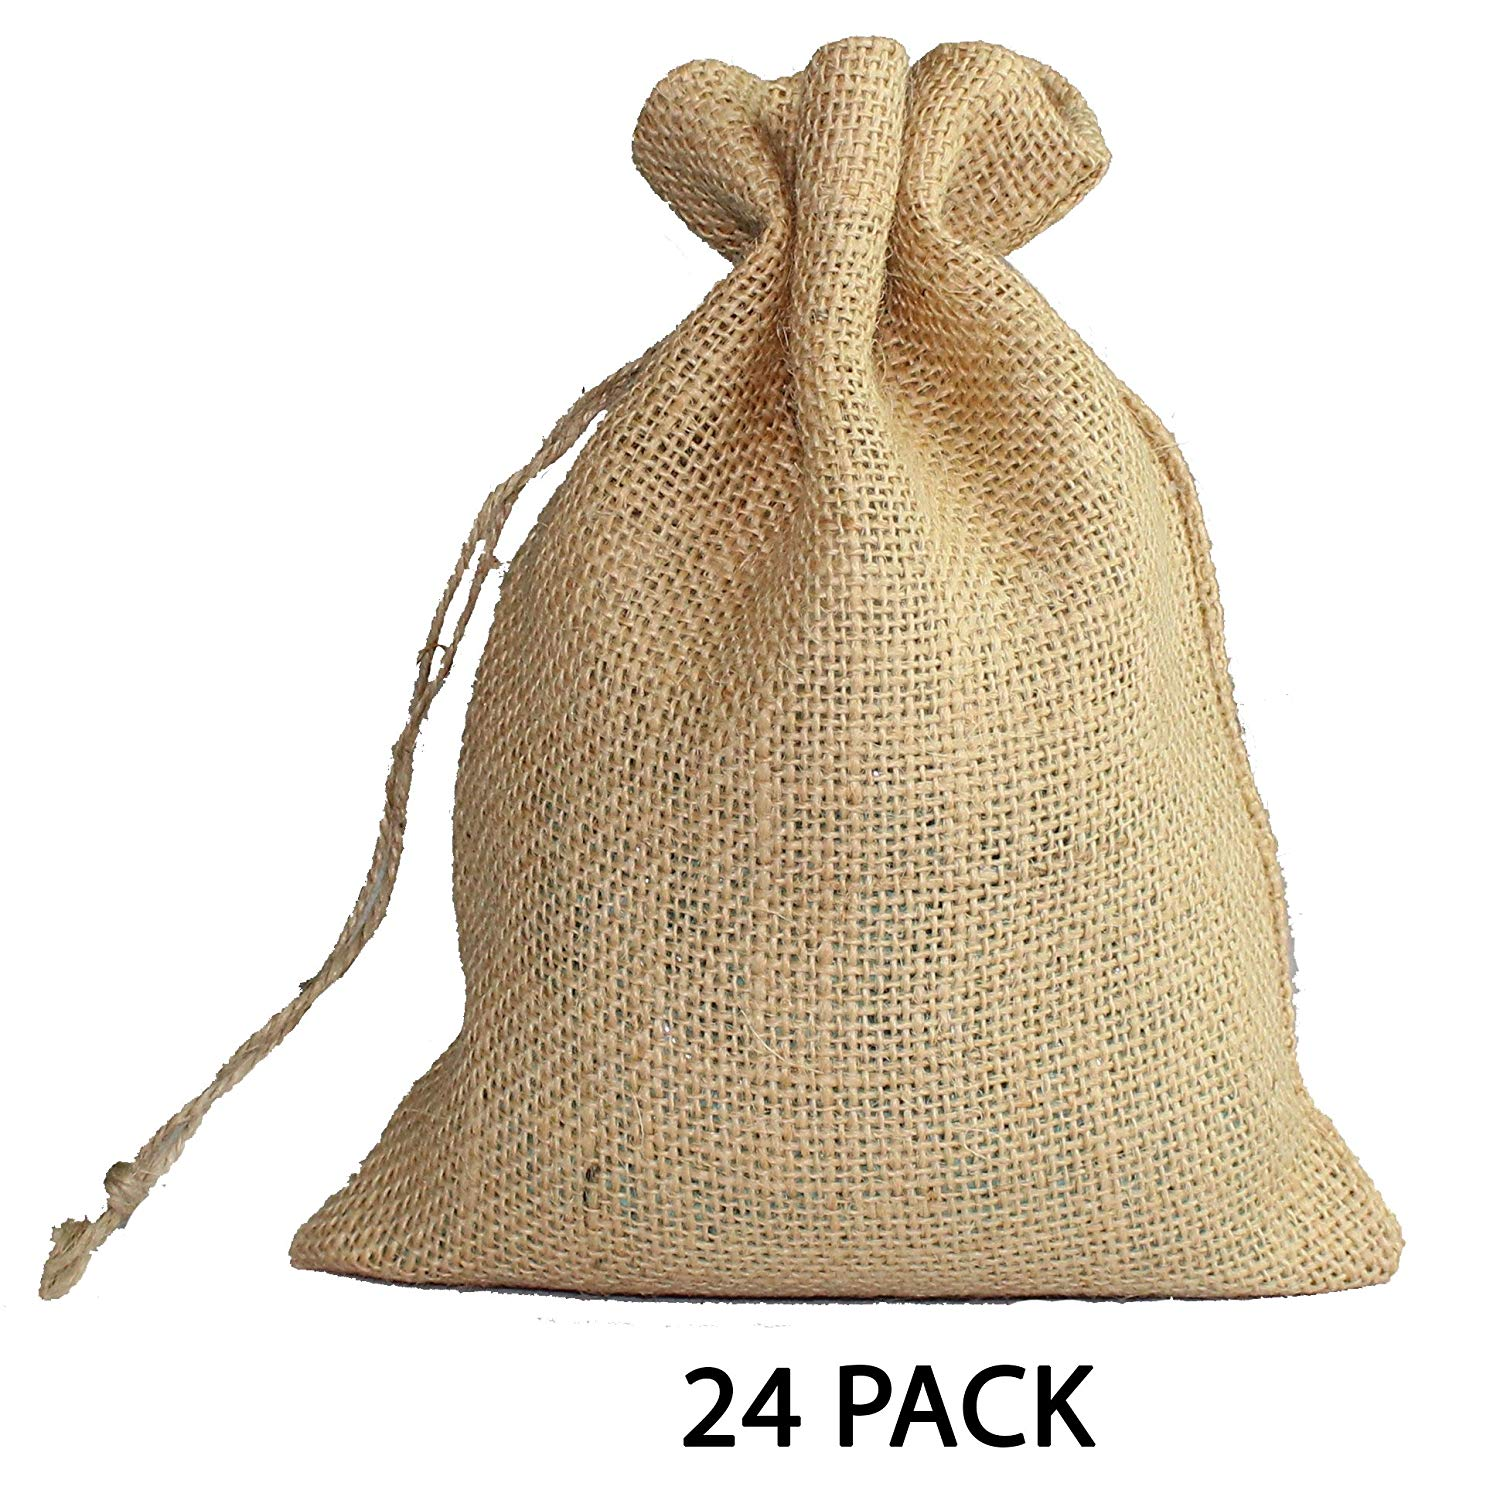 Cotton Craft - 24 Pack - Jute Burlap Gift Bags - Natural - 6x8 - Versatile - Sturdy - Rustic - Durable